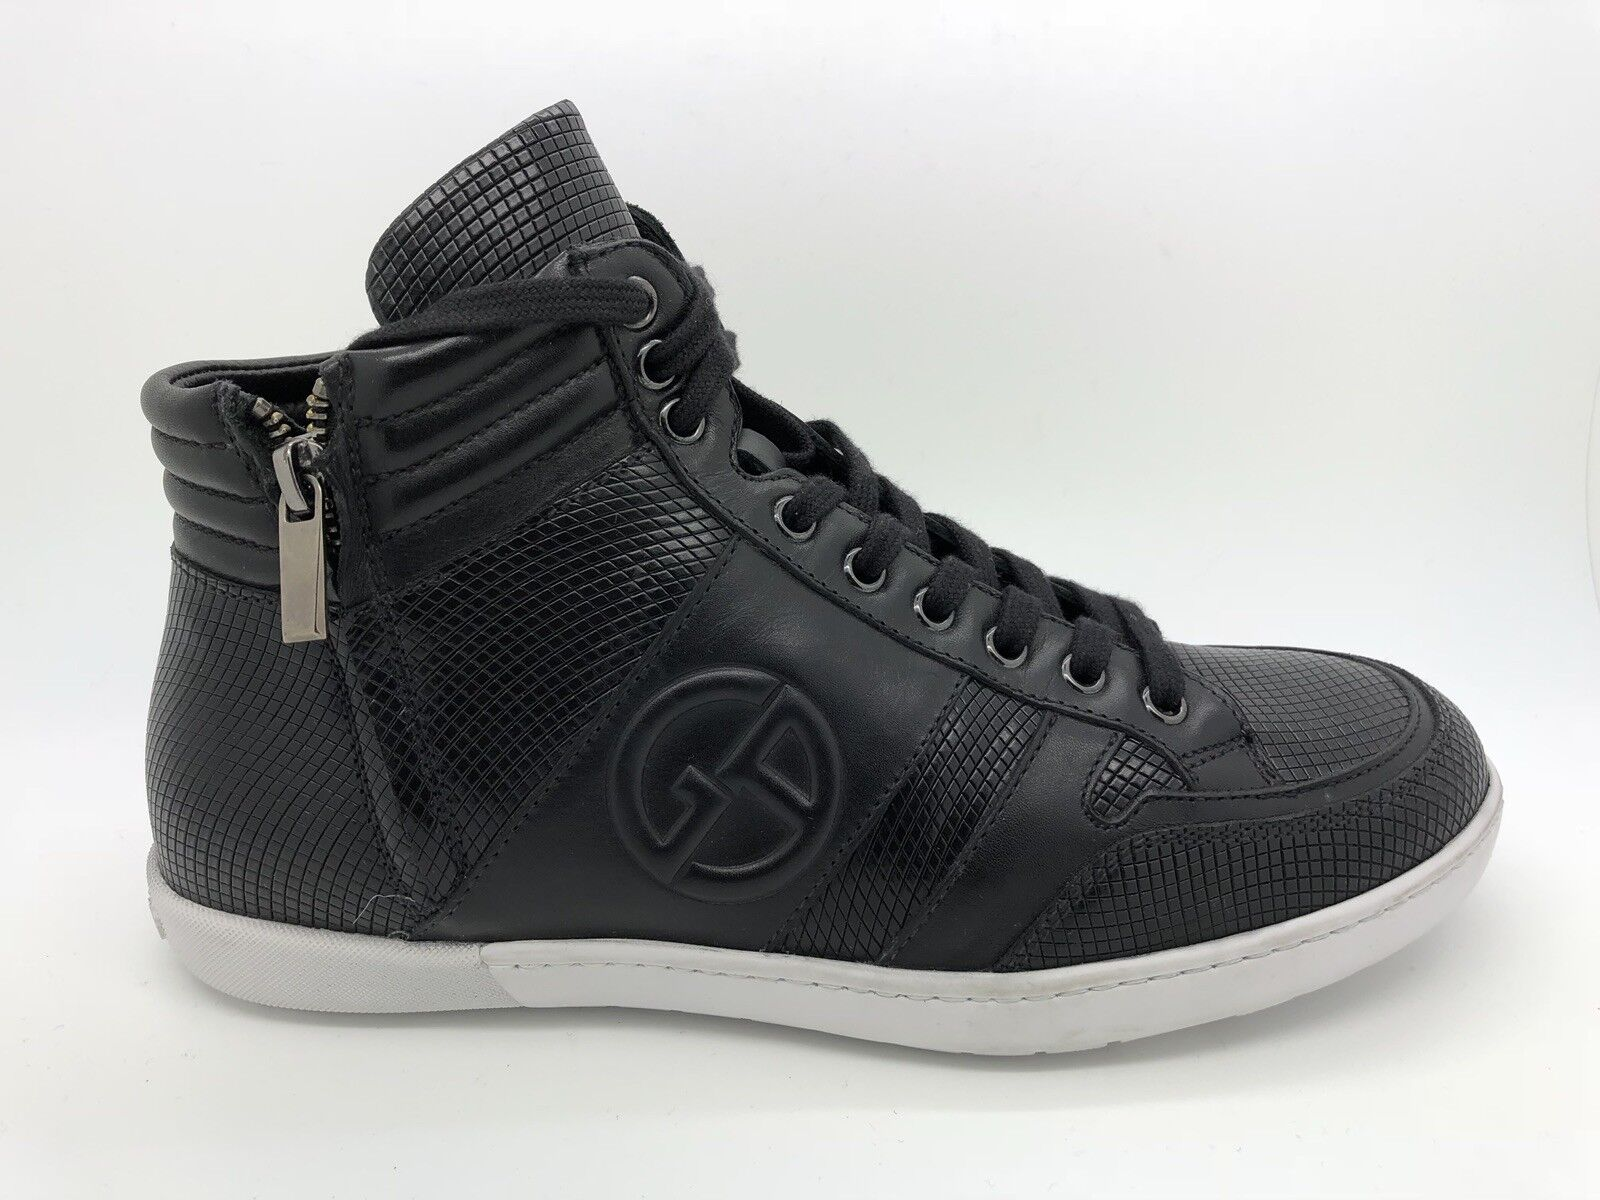 795 Giorgio Armani Optic-Print Texturouge High-top baskets, Noir Taille 8